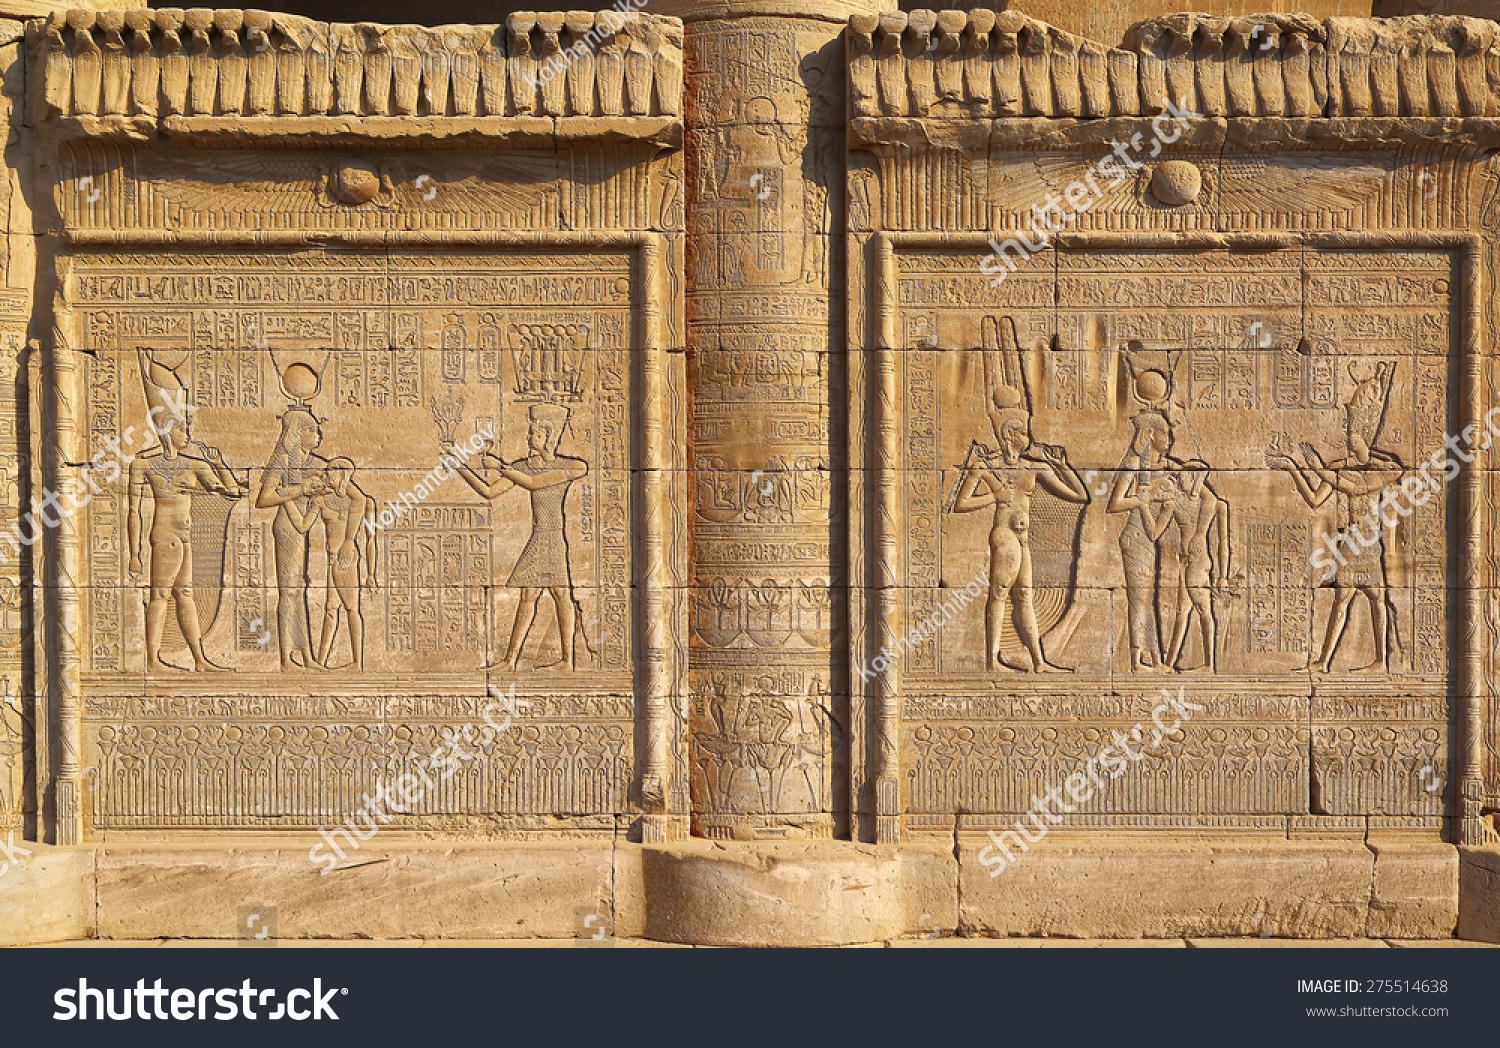 Hieroglyphic carvings on the exterior walls of an ancient